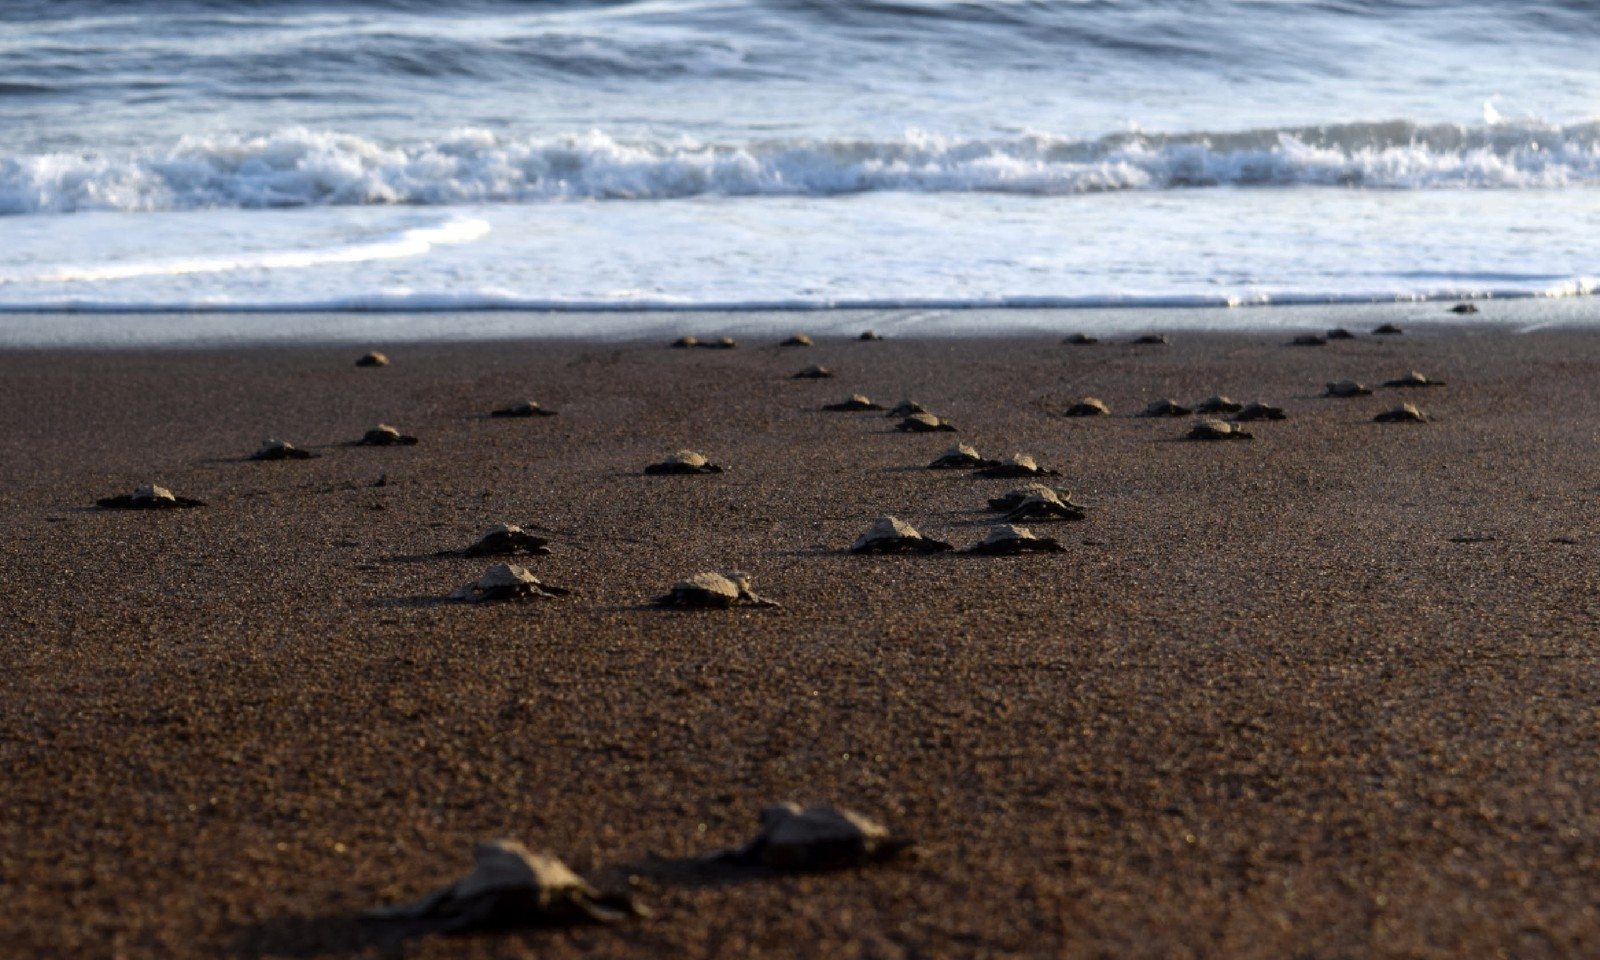 Turtles heading to the sea, Costa Rica (Dreamtime)